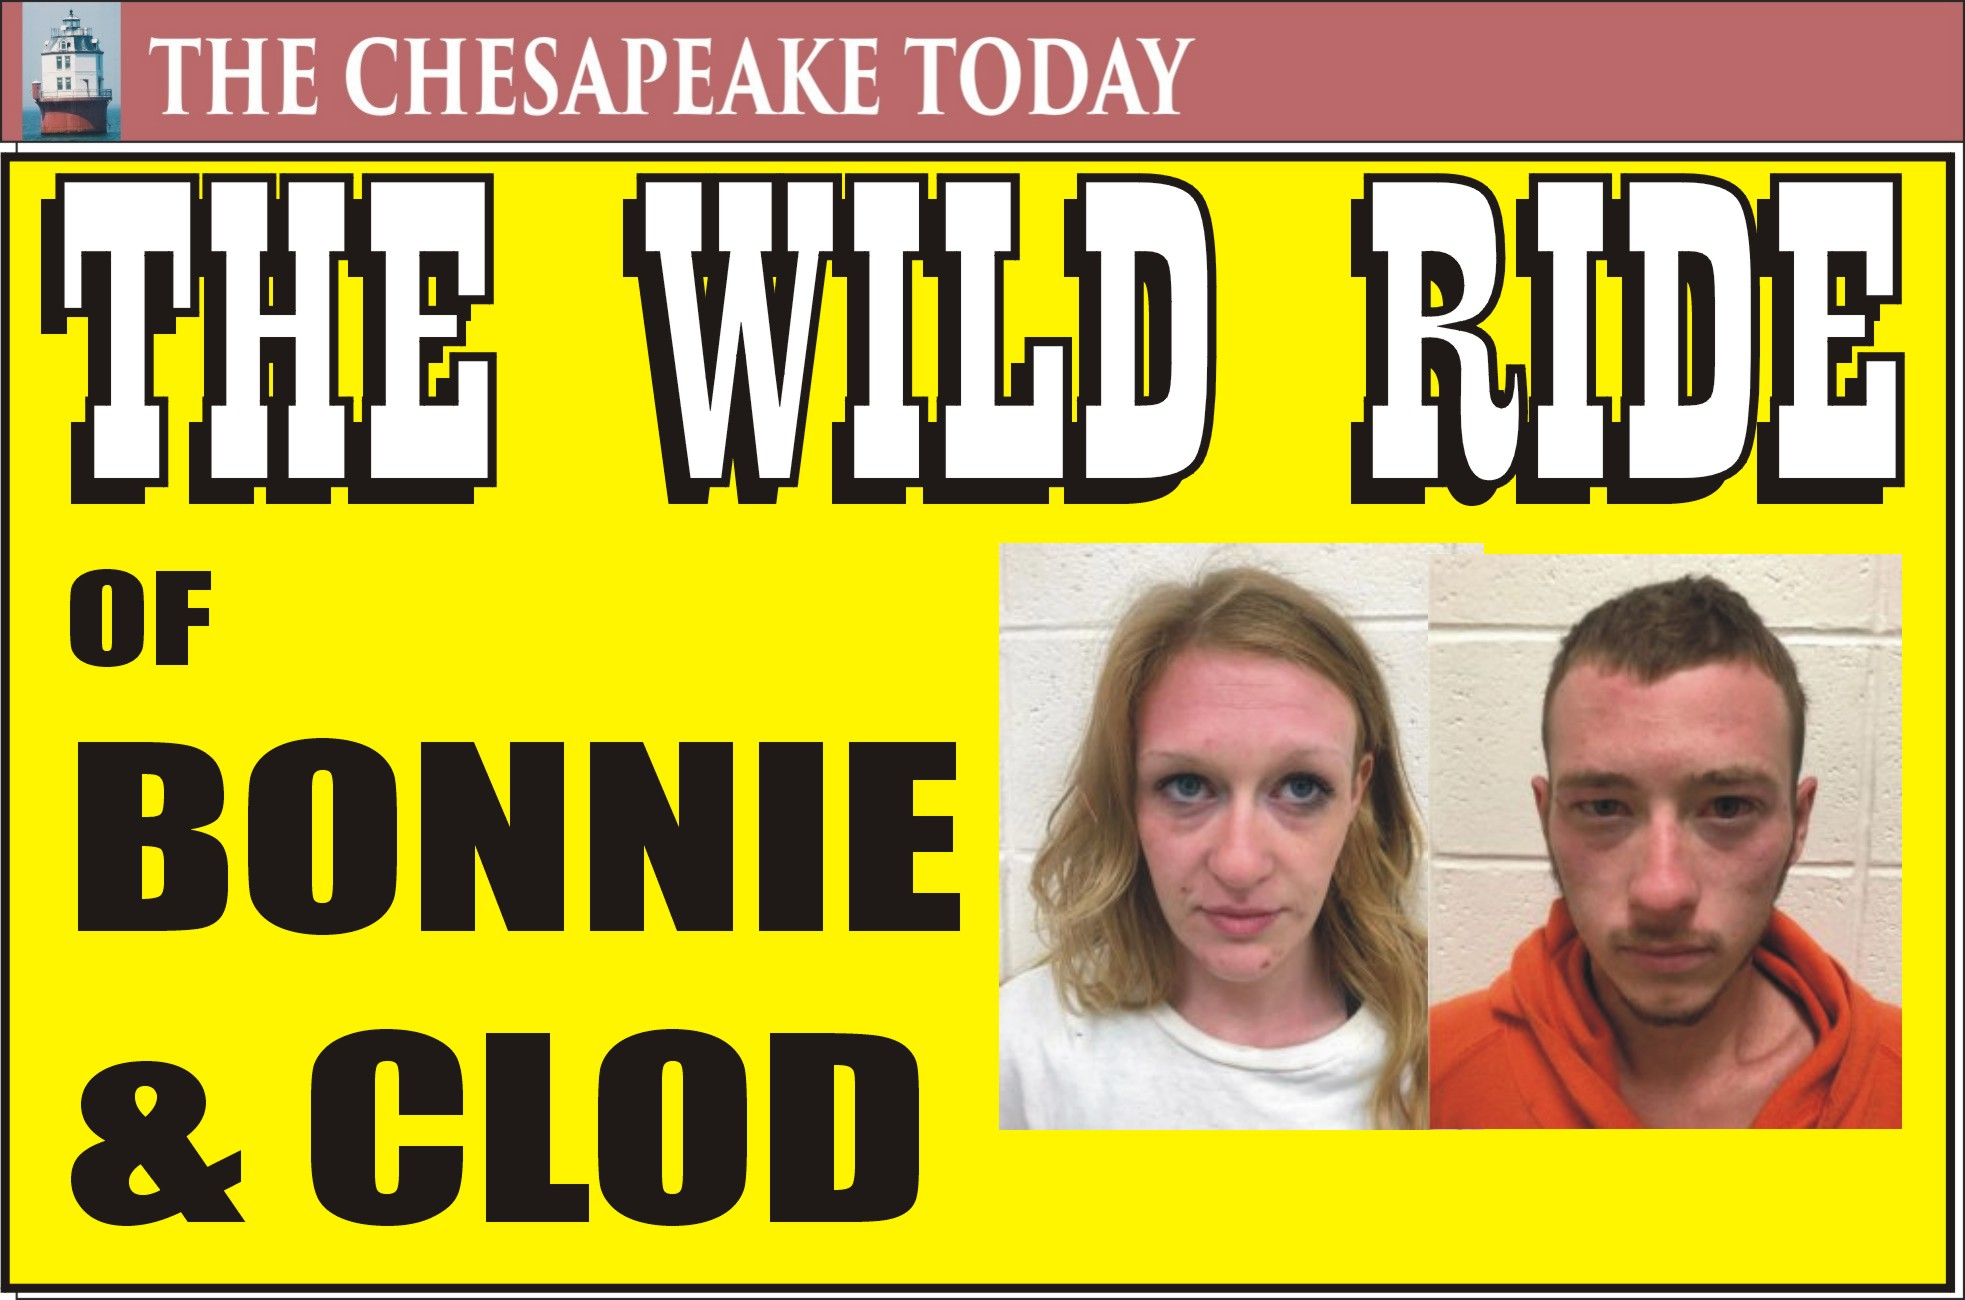 BONNIE AND CLOD'S GREAT ATV ADVENTURE: K9s Wade & Max sniffed out miscreants from bushes